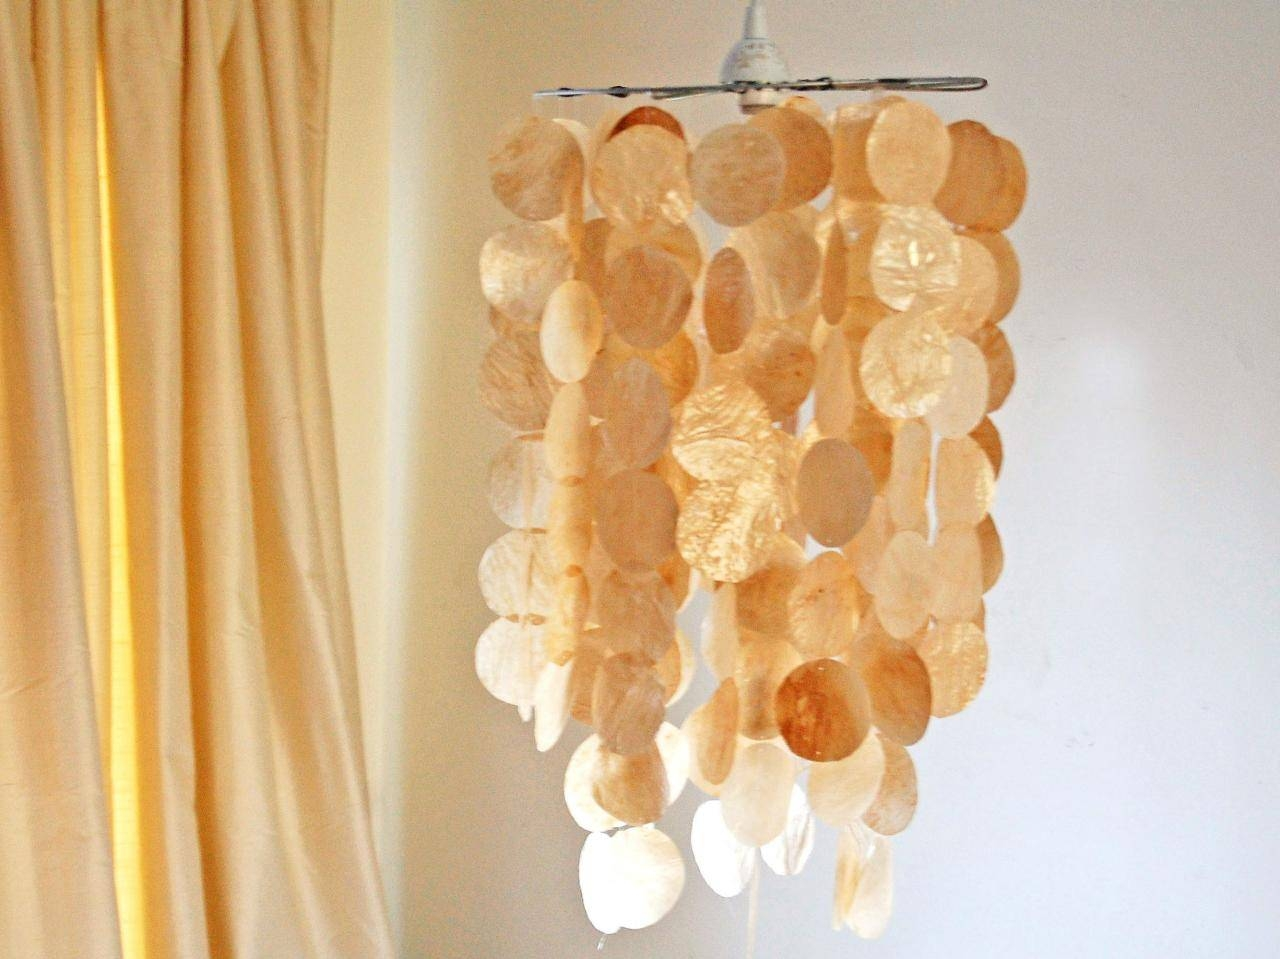 Brighten Up With These Diy Home Lighting Ideas | Hgtv's Decorating with Shell Lights Shades (Image 4 of 15)